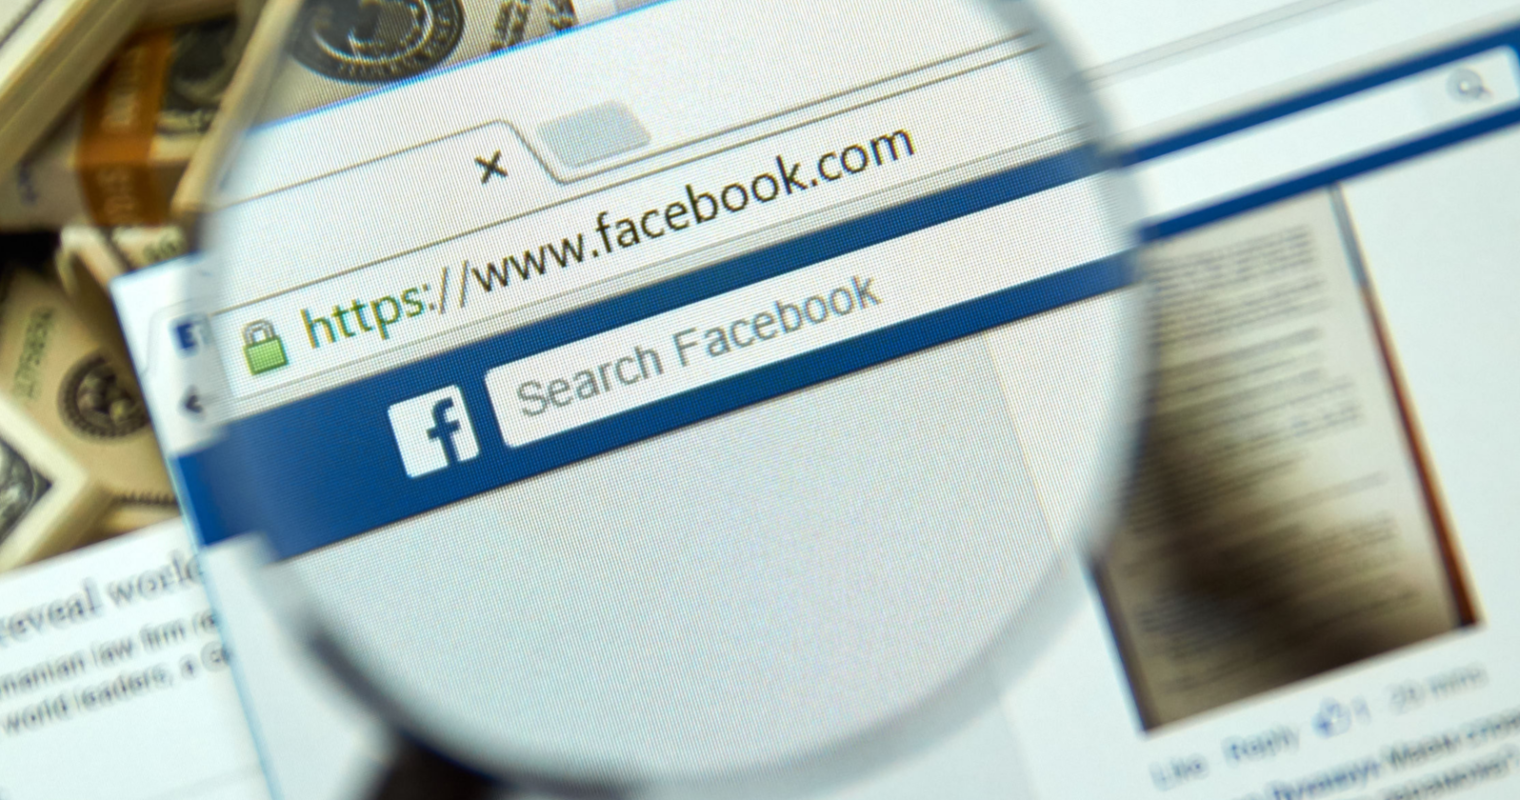 Facebook is Letting More Advertisers Place Ads in Search Results